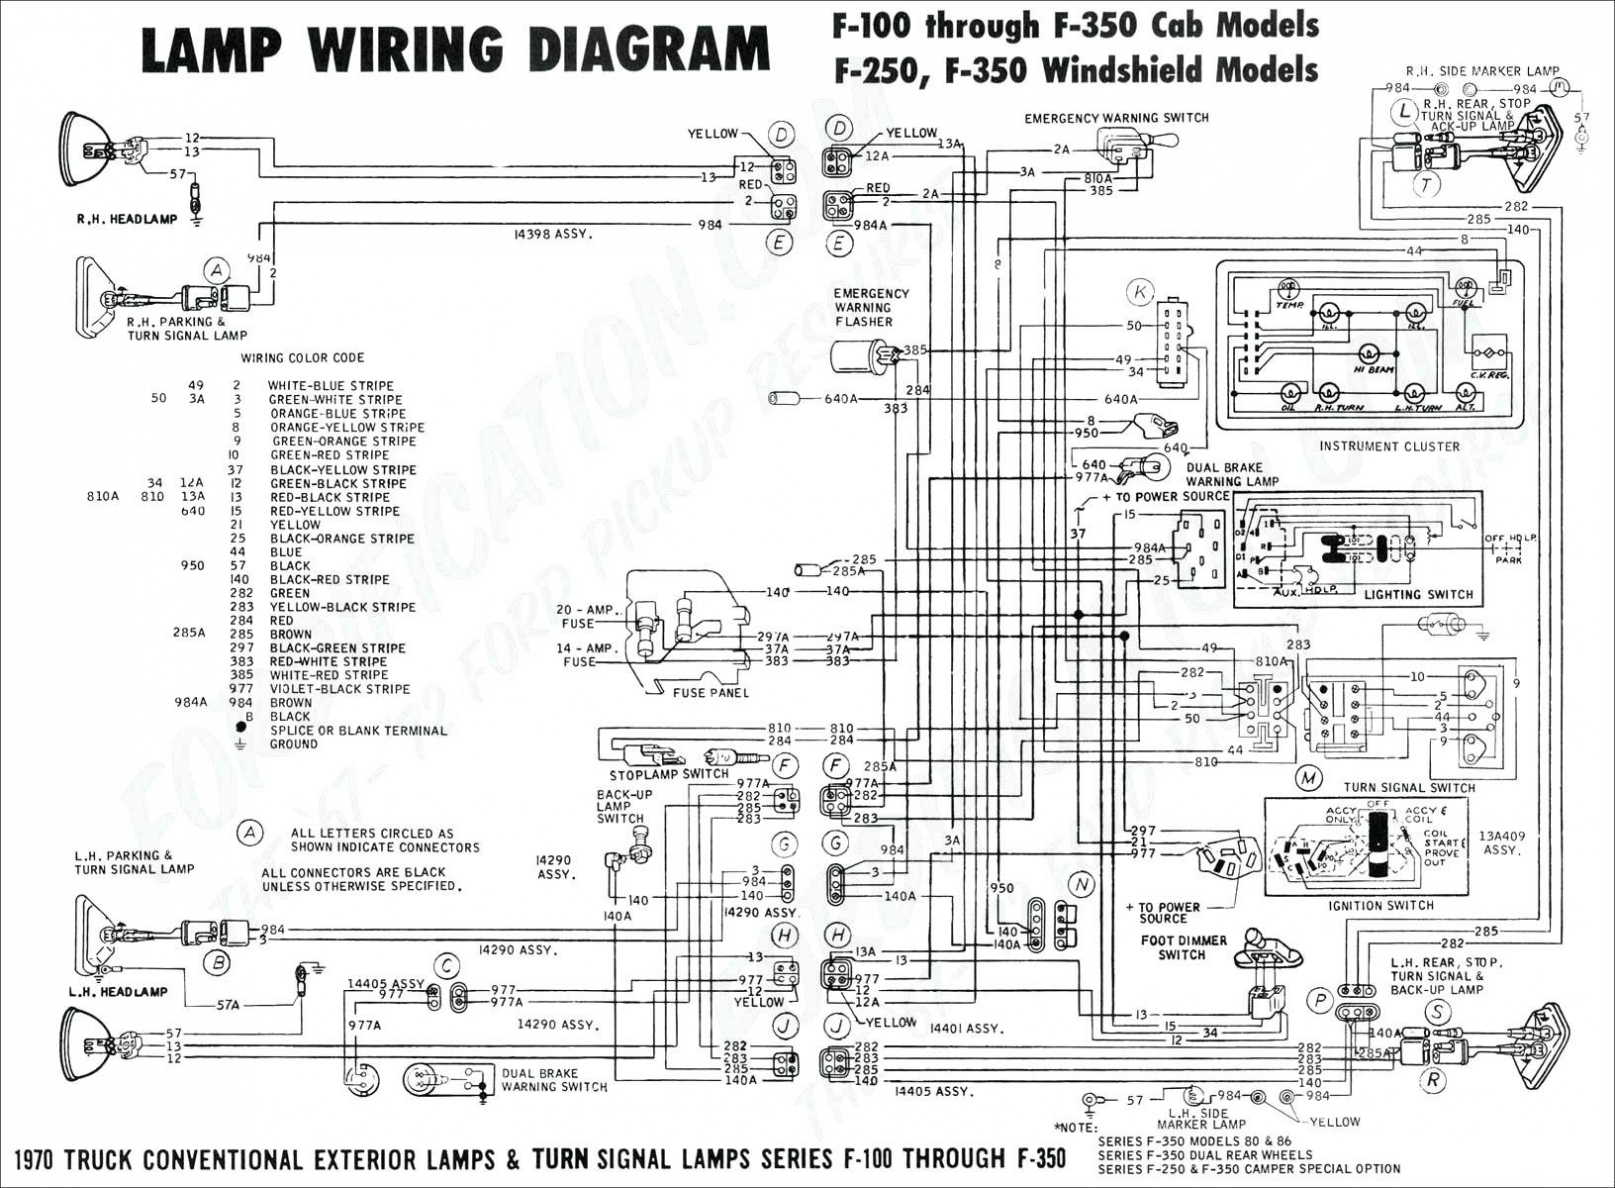 88 mazda wiring diagram wiring diagram article 88 mazda 323 radio wiring diagram 88 mazda wiring diagram #1